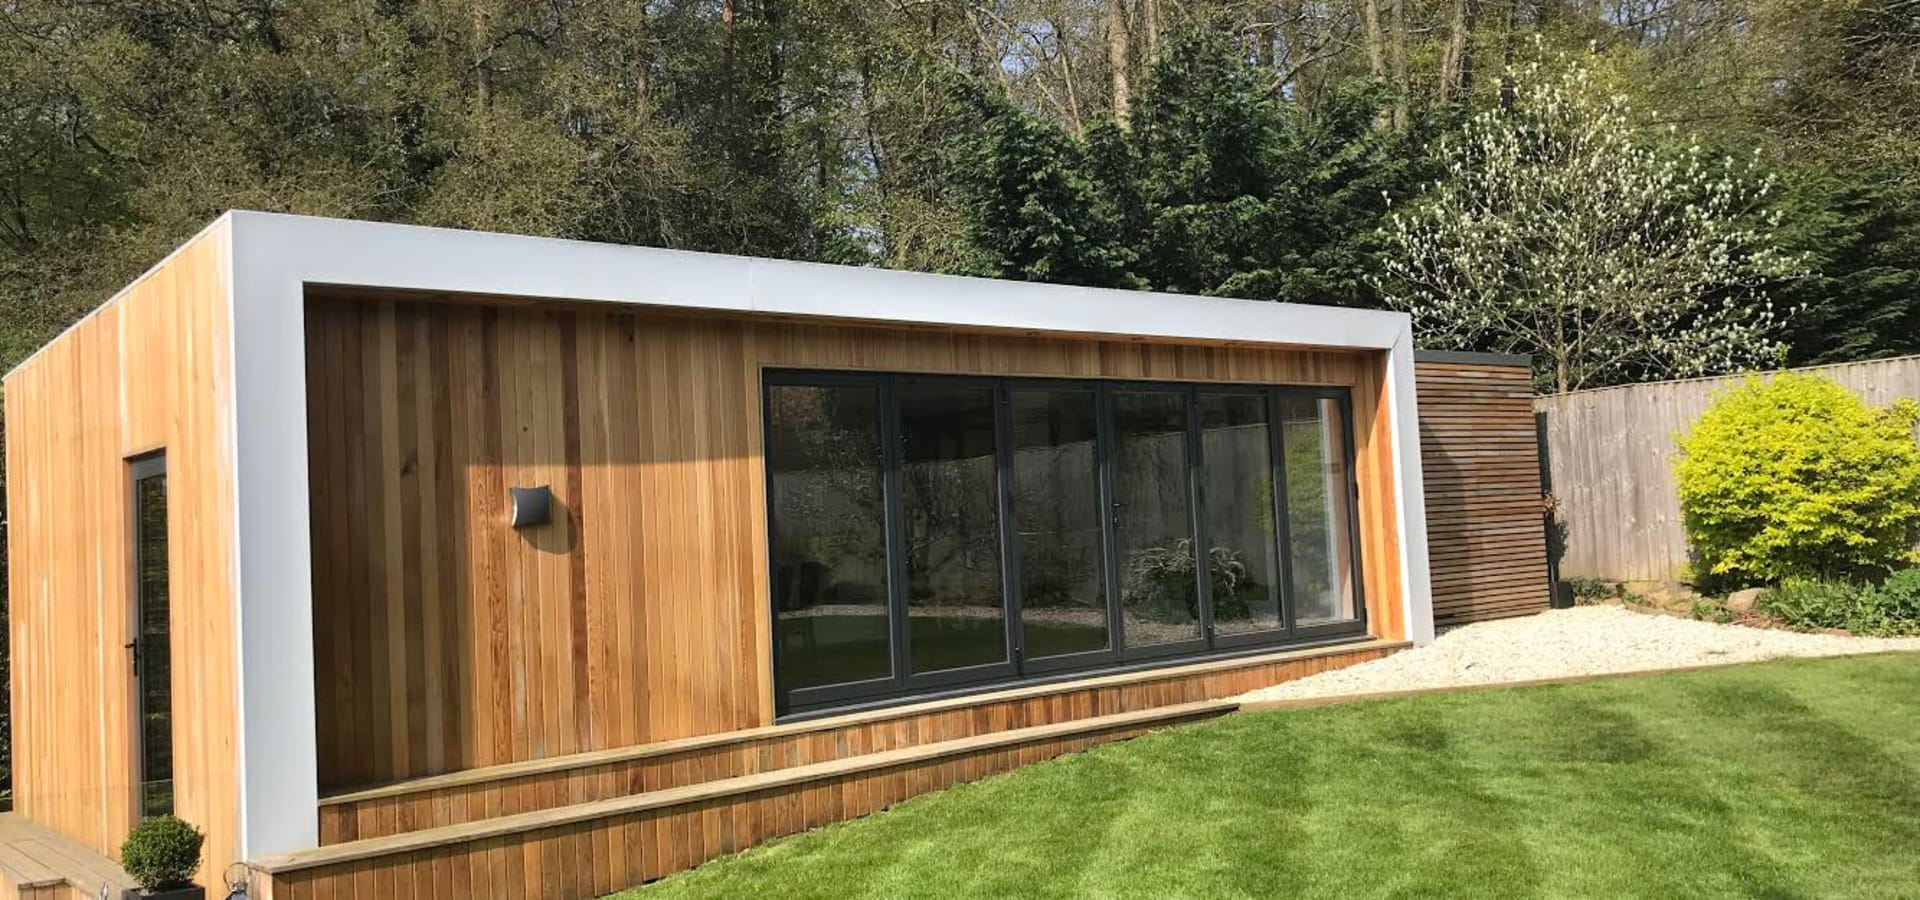 Large garden room project by modern garden rooms ltd homify